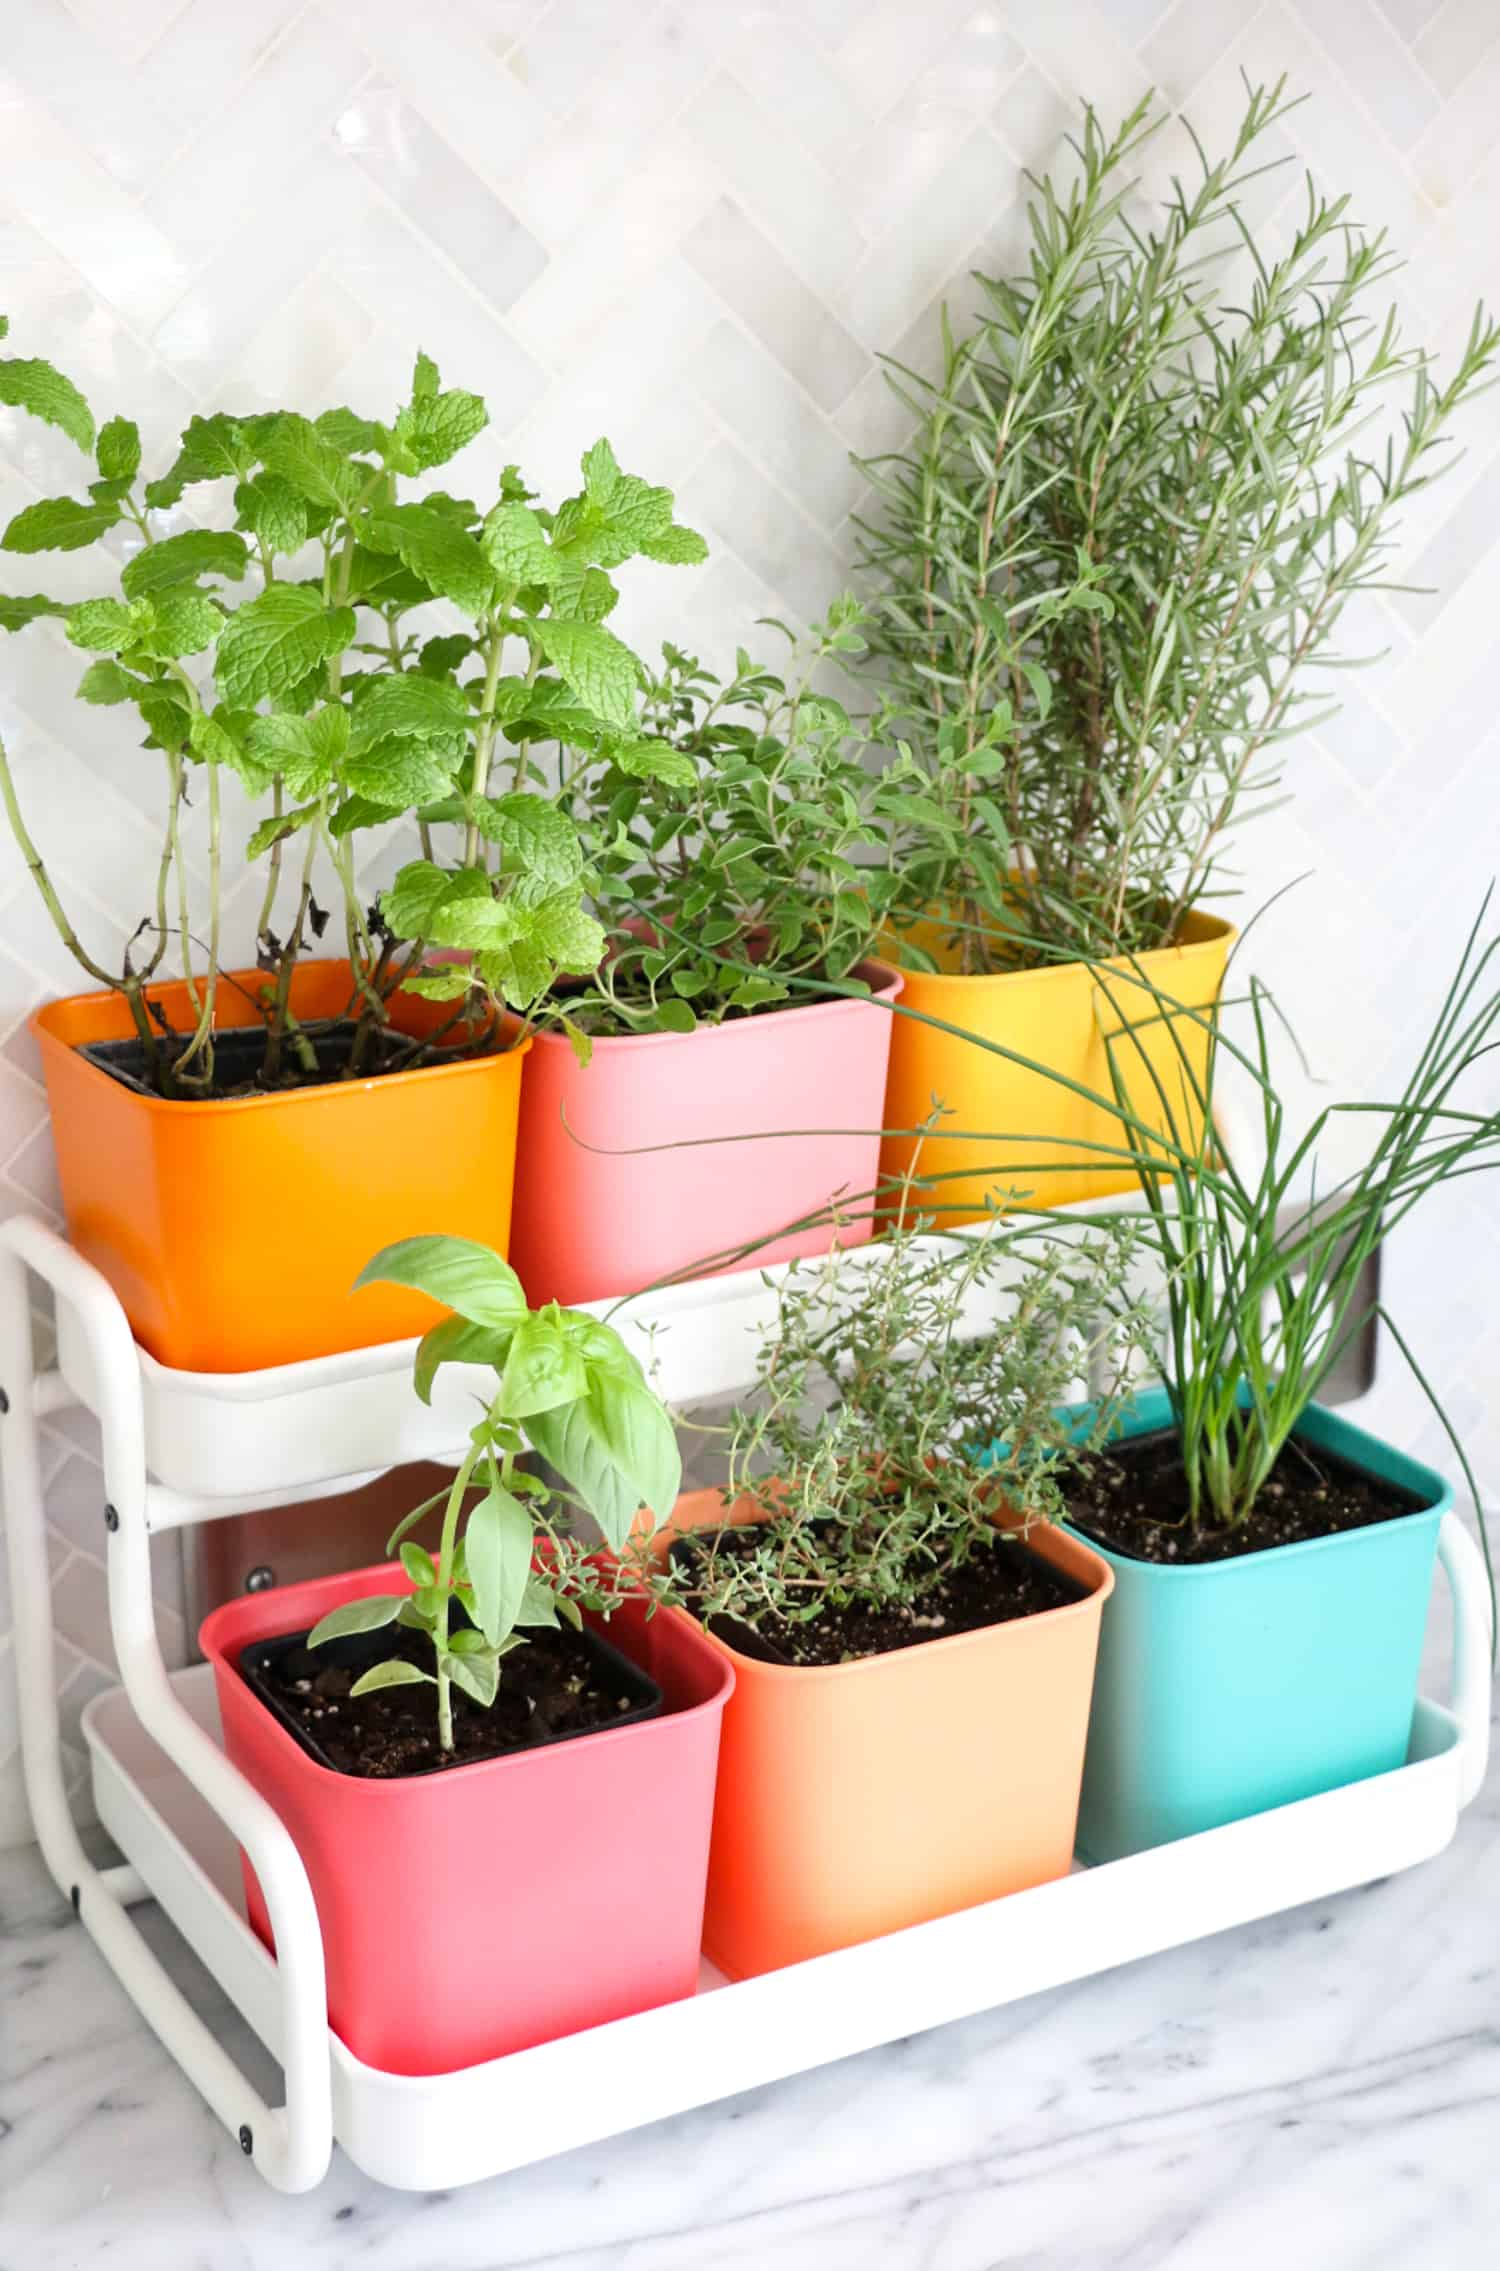 How Awesome Of These Hanging Ice Chest Hacks Made From Ikea Planters Just Drop By Paper Sch And She Will Show You A Little Bit Spray